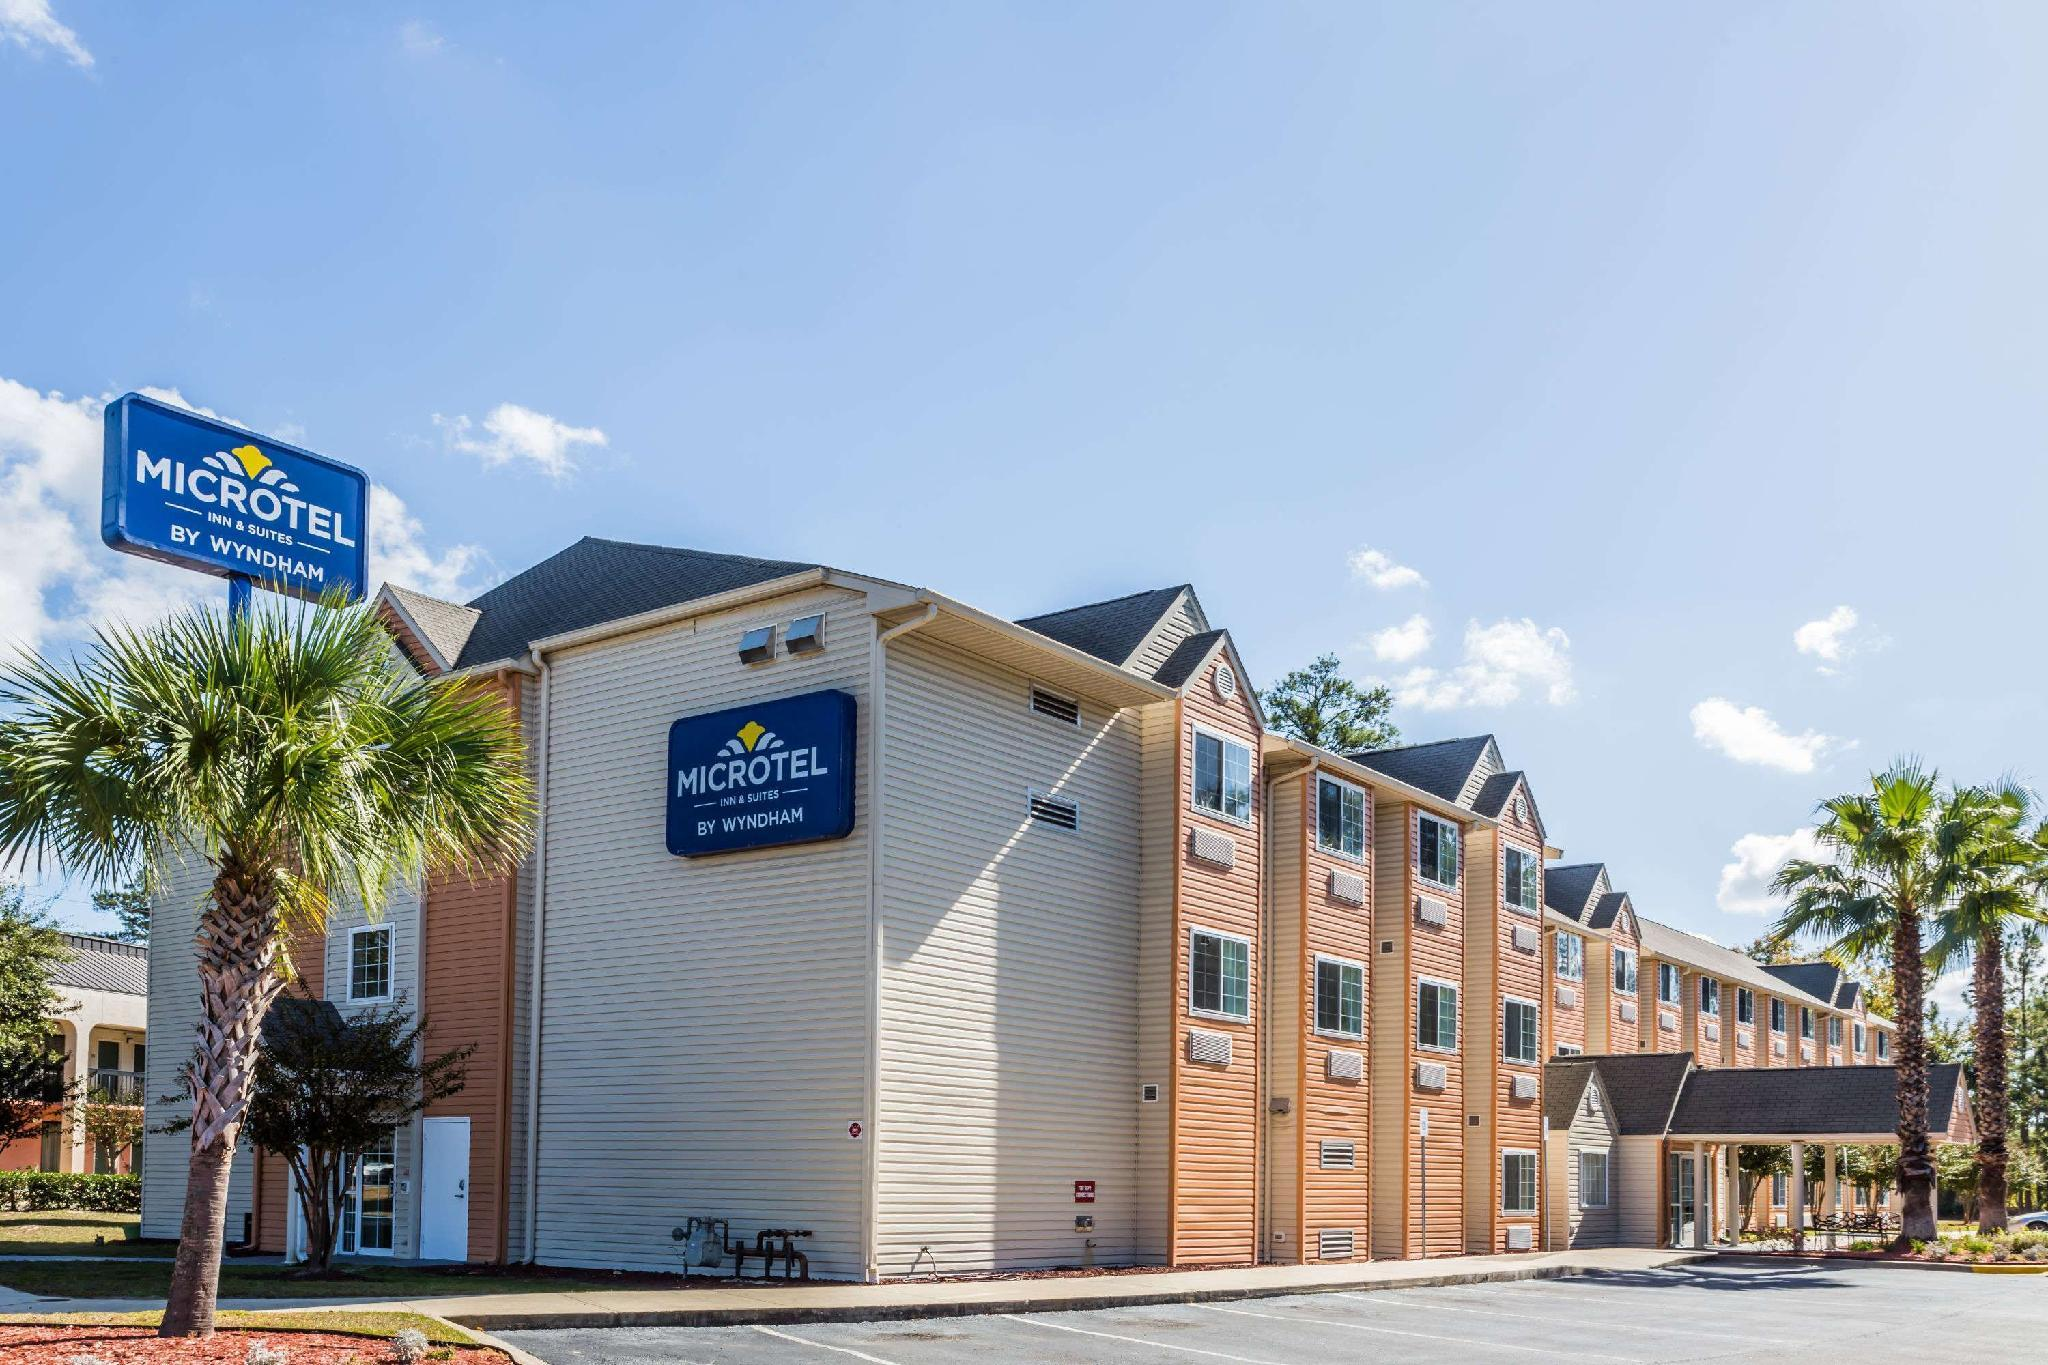 Microtel Inn And Suites By Wyndham Tallahassee